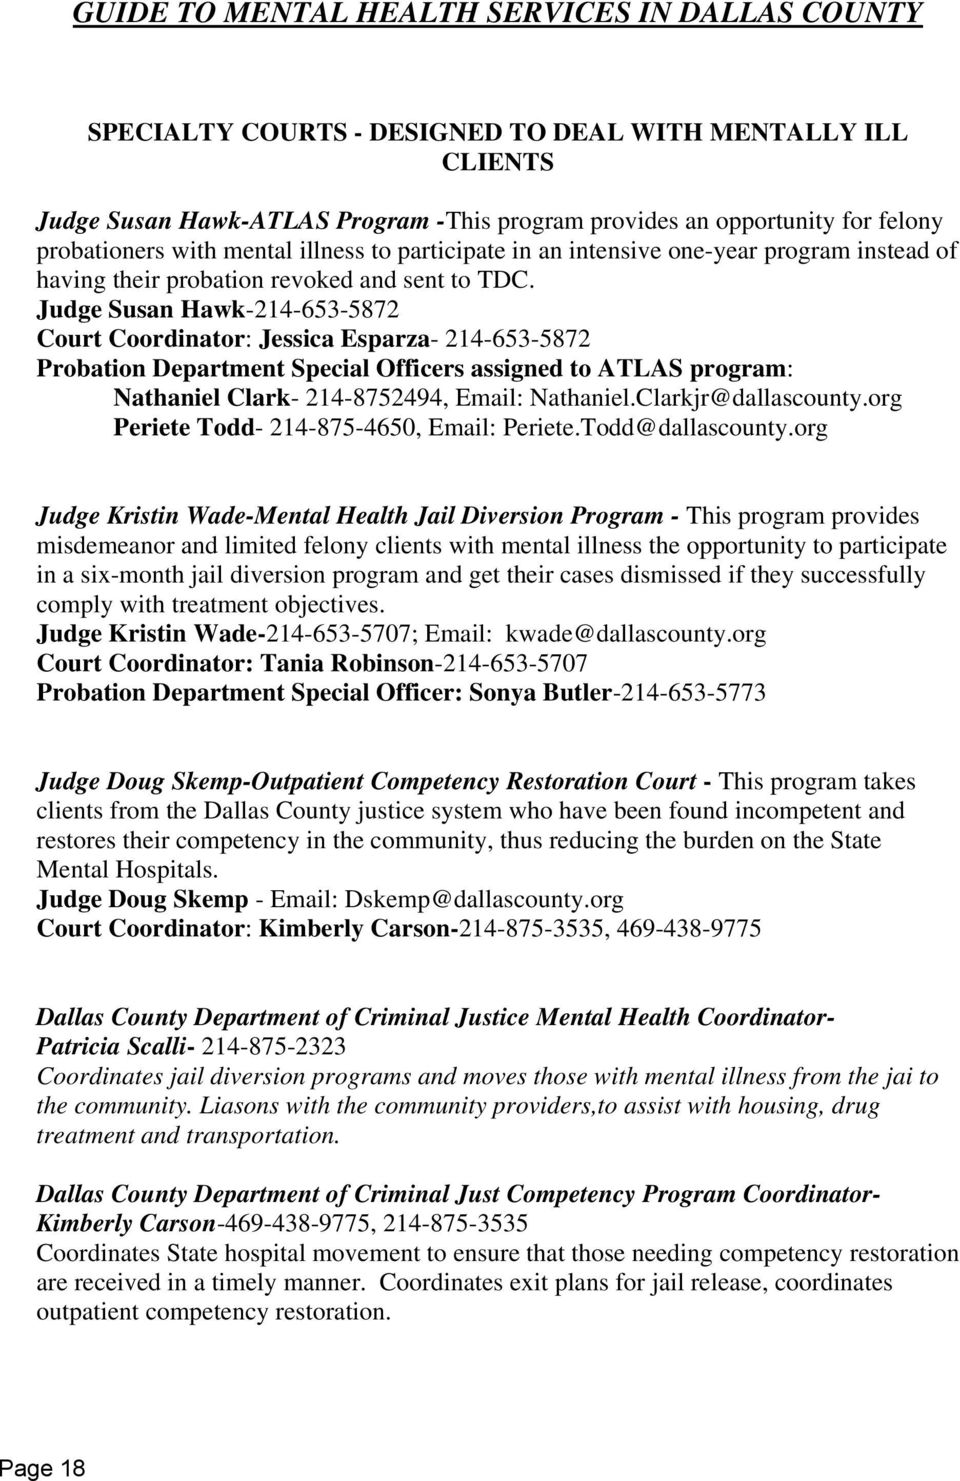 Judge Susan Hawk-214-653-5872 Court Coordinator: Jessica Esparza- 214-653-5872 Probation Department Special Officers assigned to ATLAS program: Nathaniel Clark- 214-8752494, Email: Nathaniel.